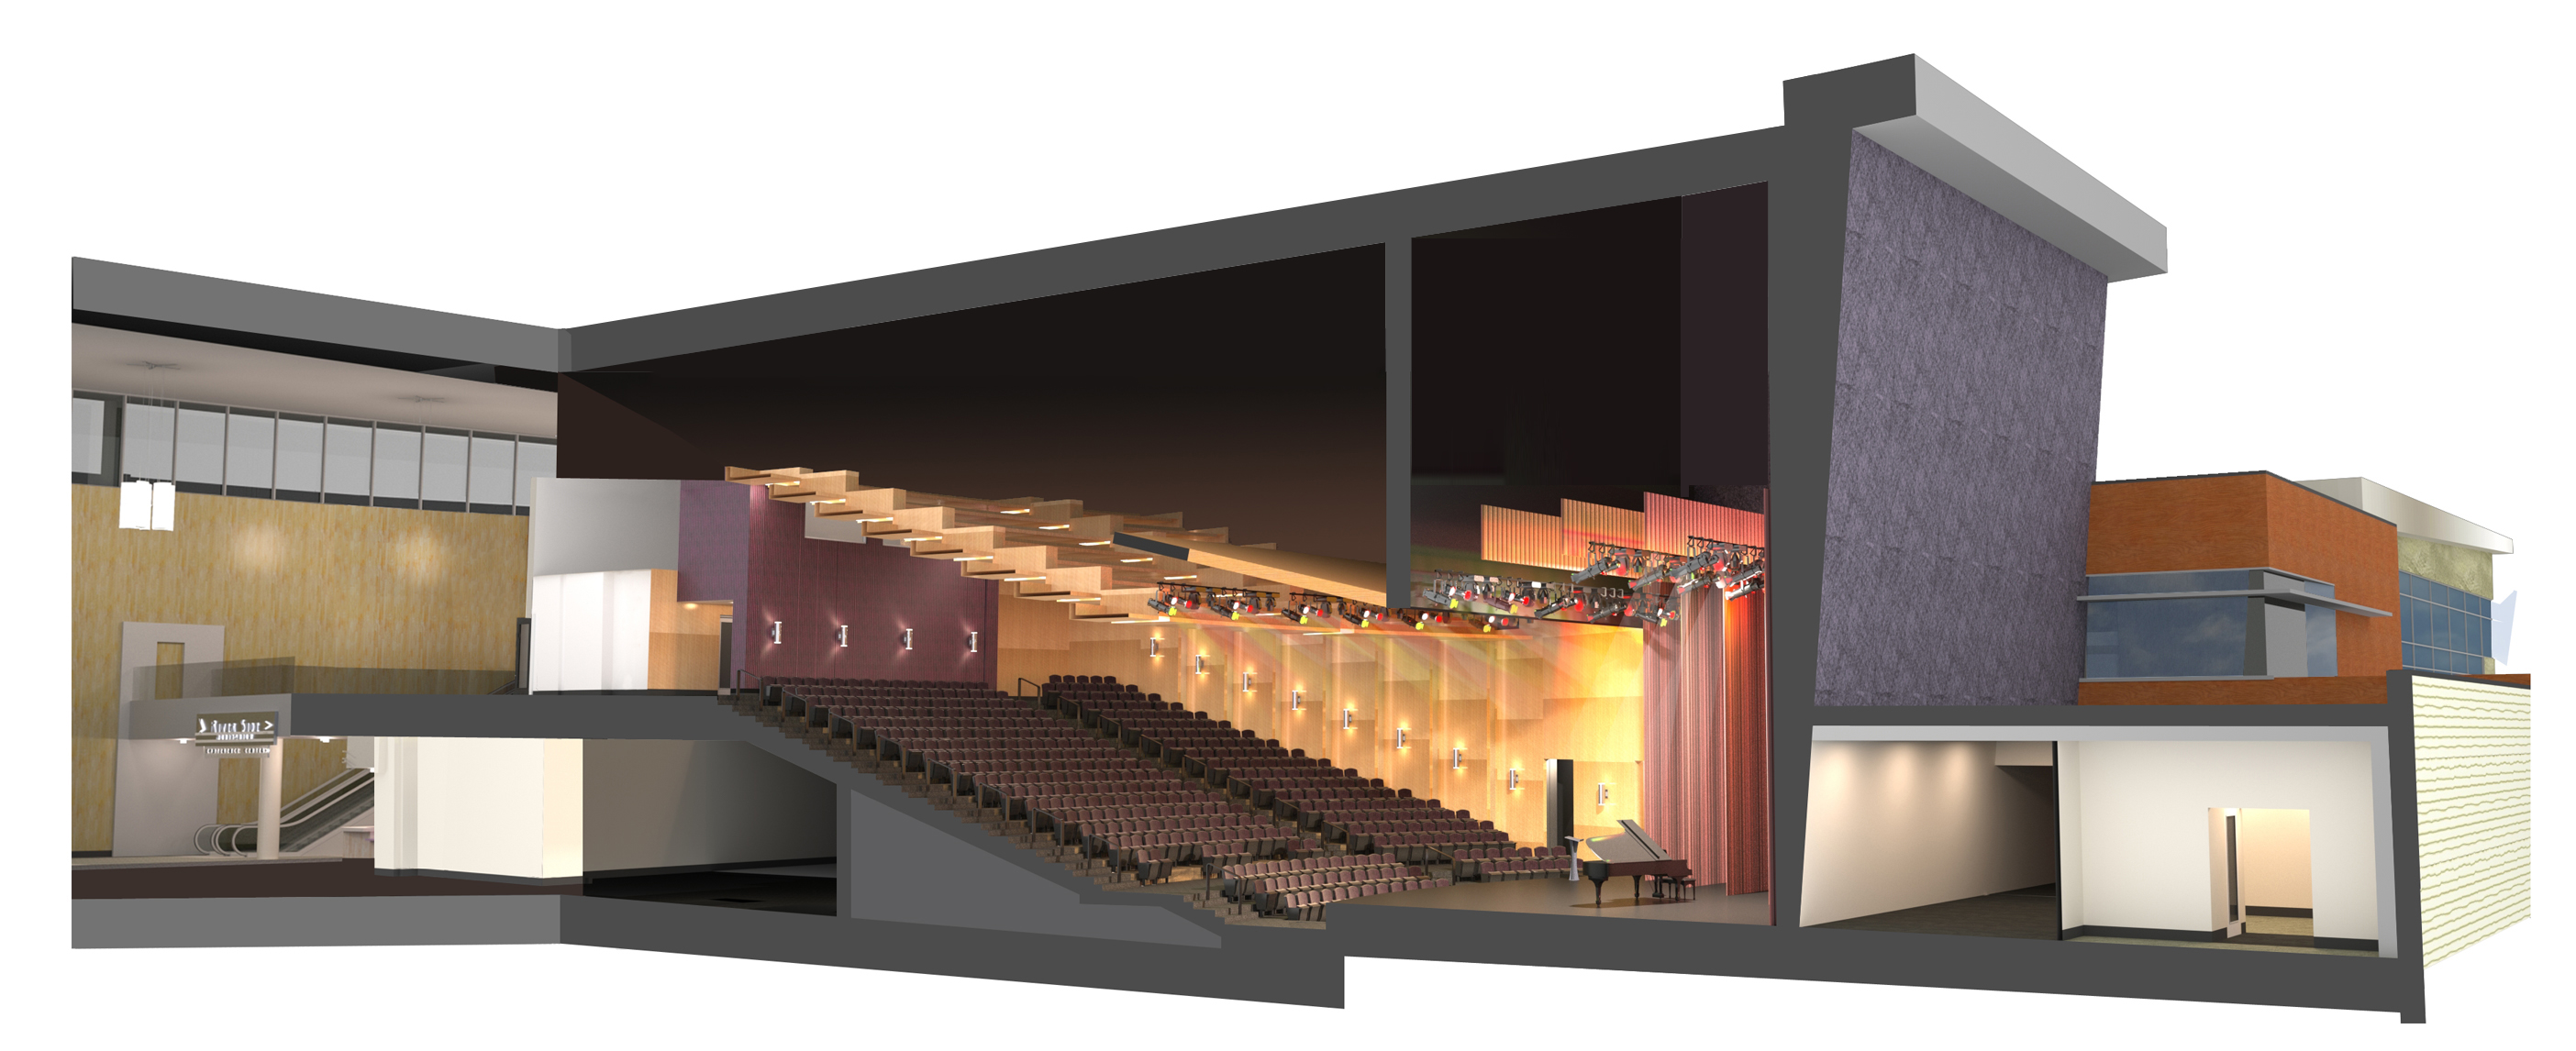 WOF_Auditorium Section